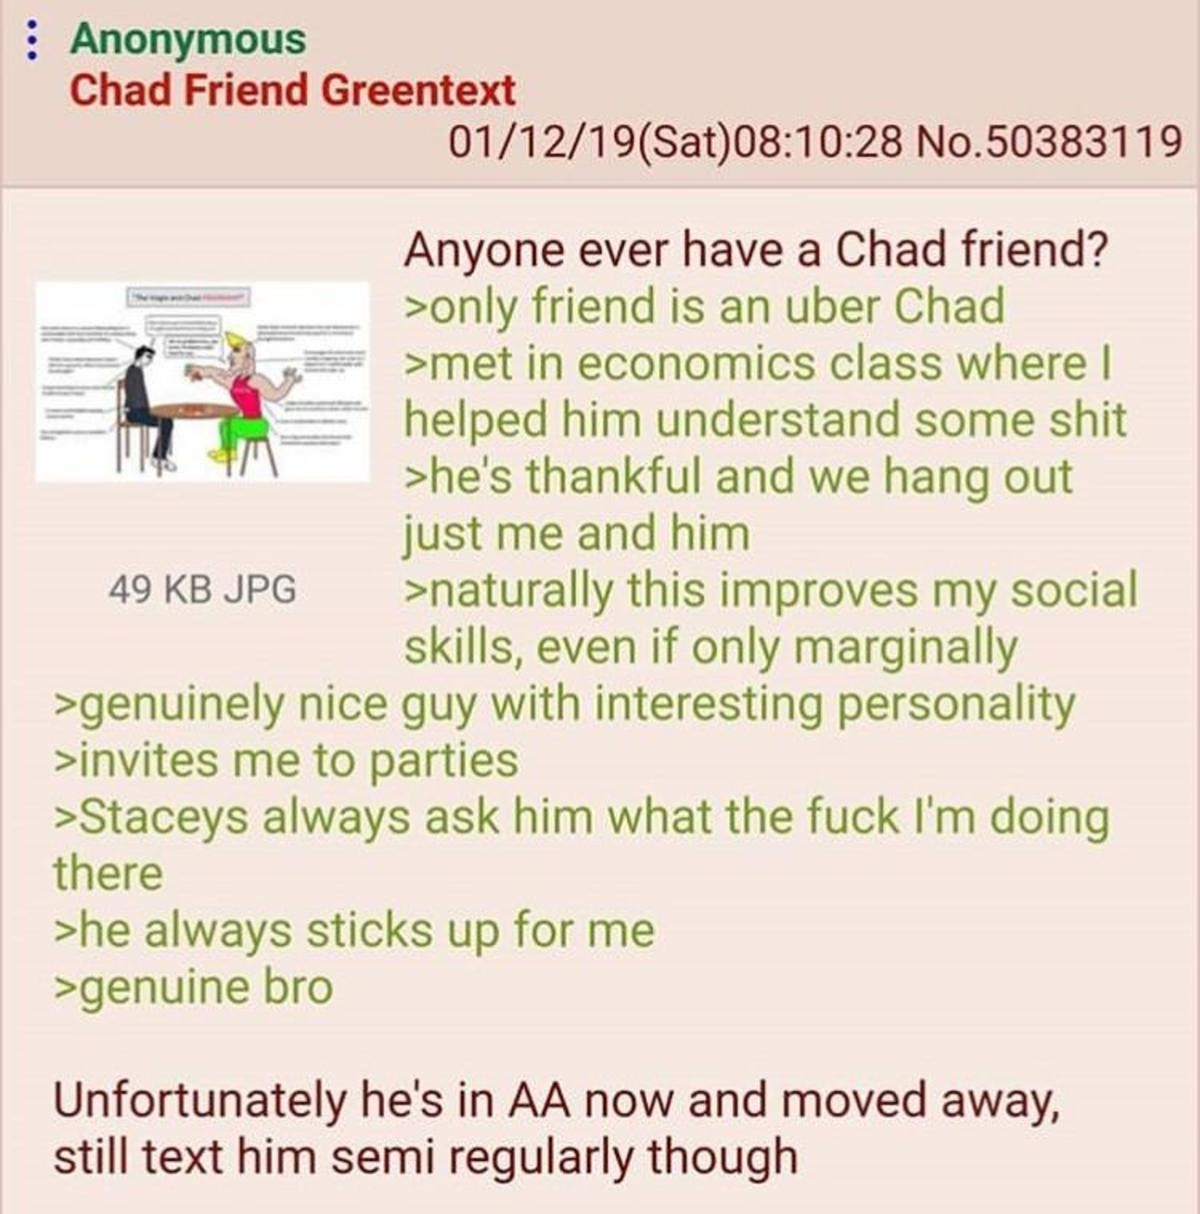 Chad is a Bro. .. What does AA mean?